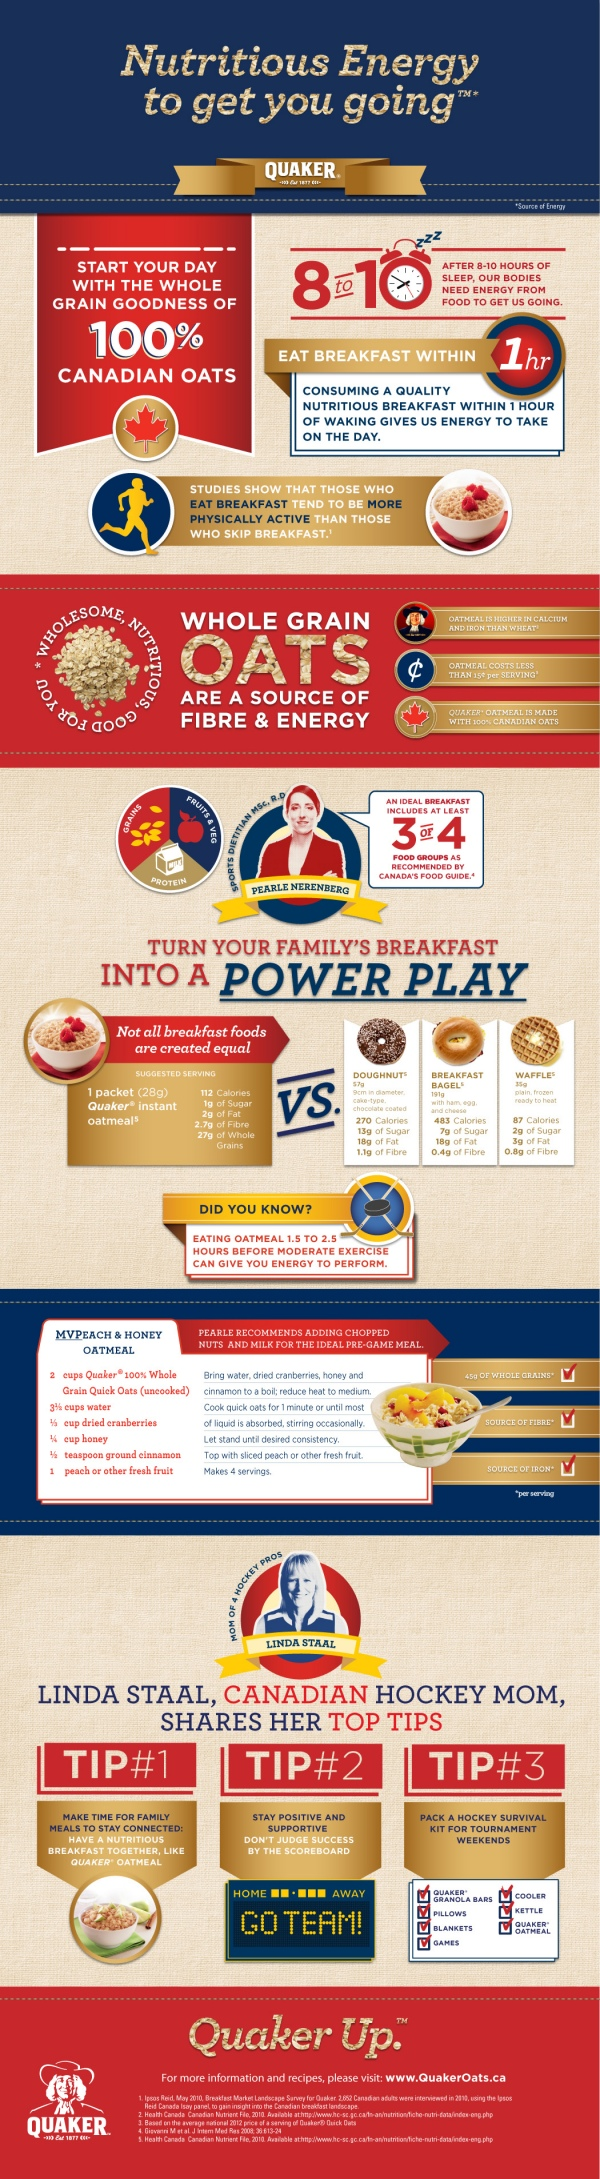 Hockey Mom Tips from Quaker and Linda Staal (mom of 4 pro hockey players) #infographic